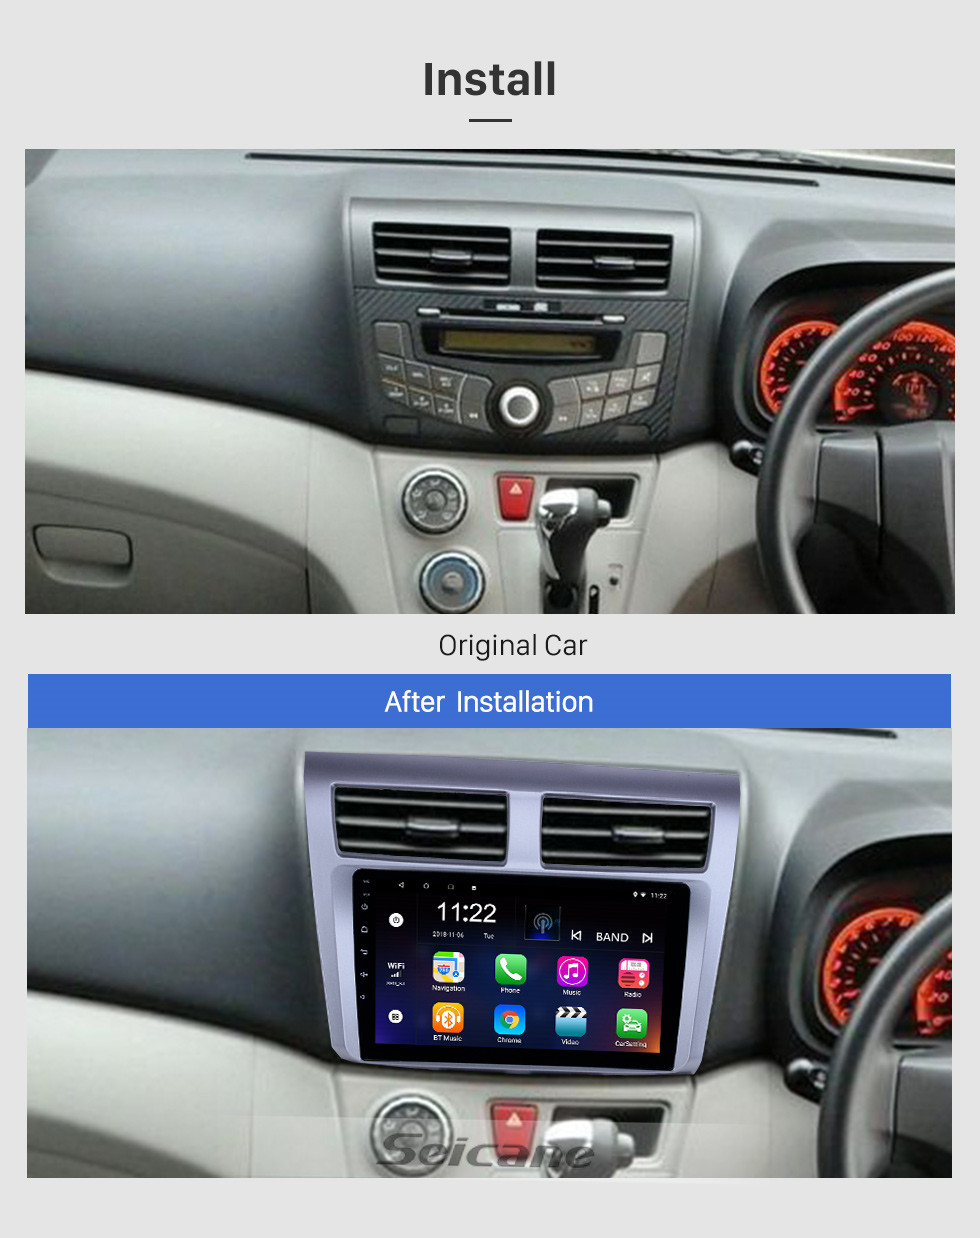 Seicane 9 inch Android 10.0 GPS Navigation Radio for 2012-2014 Proton Myvi With HD Touchscreen Bluetooth WIFI support Carplay TPMS